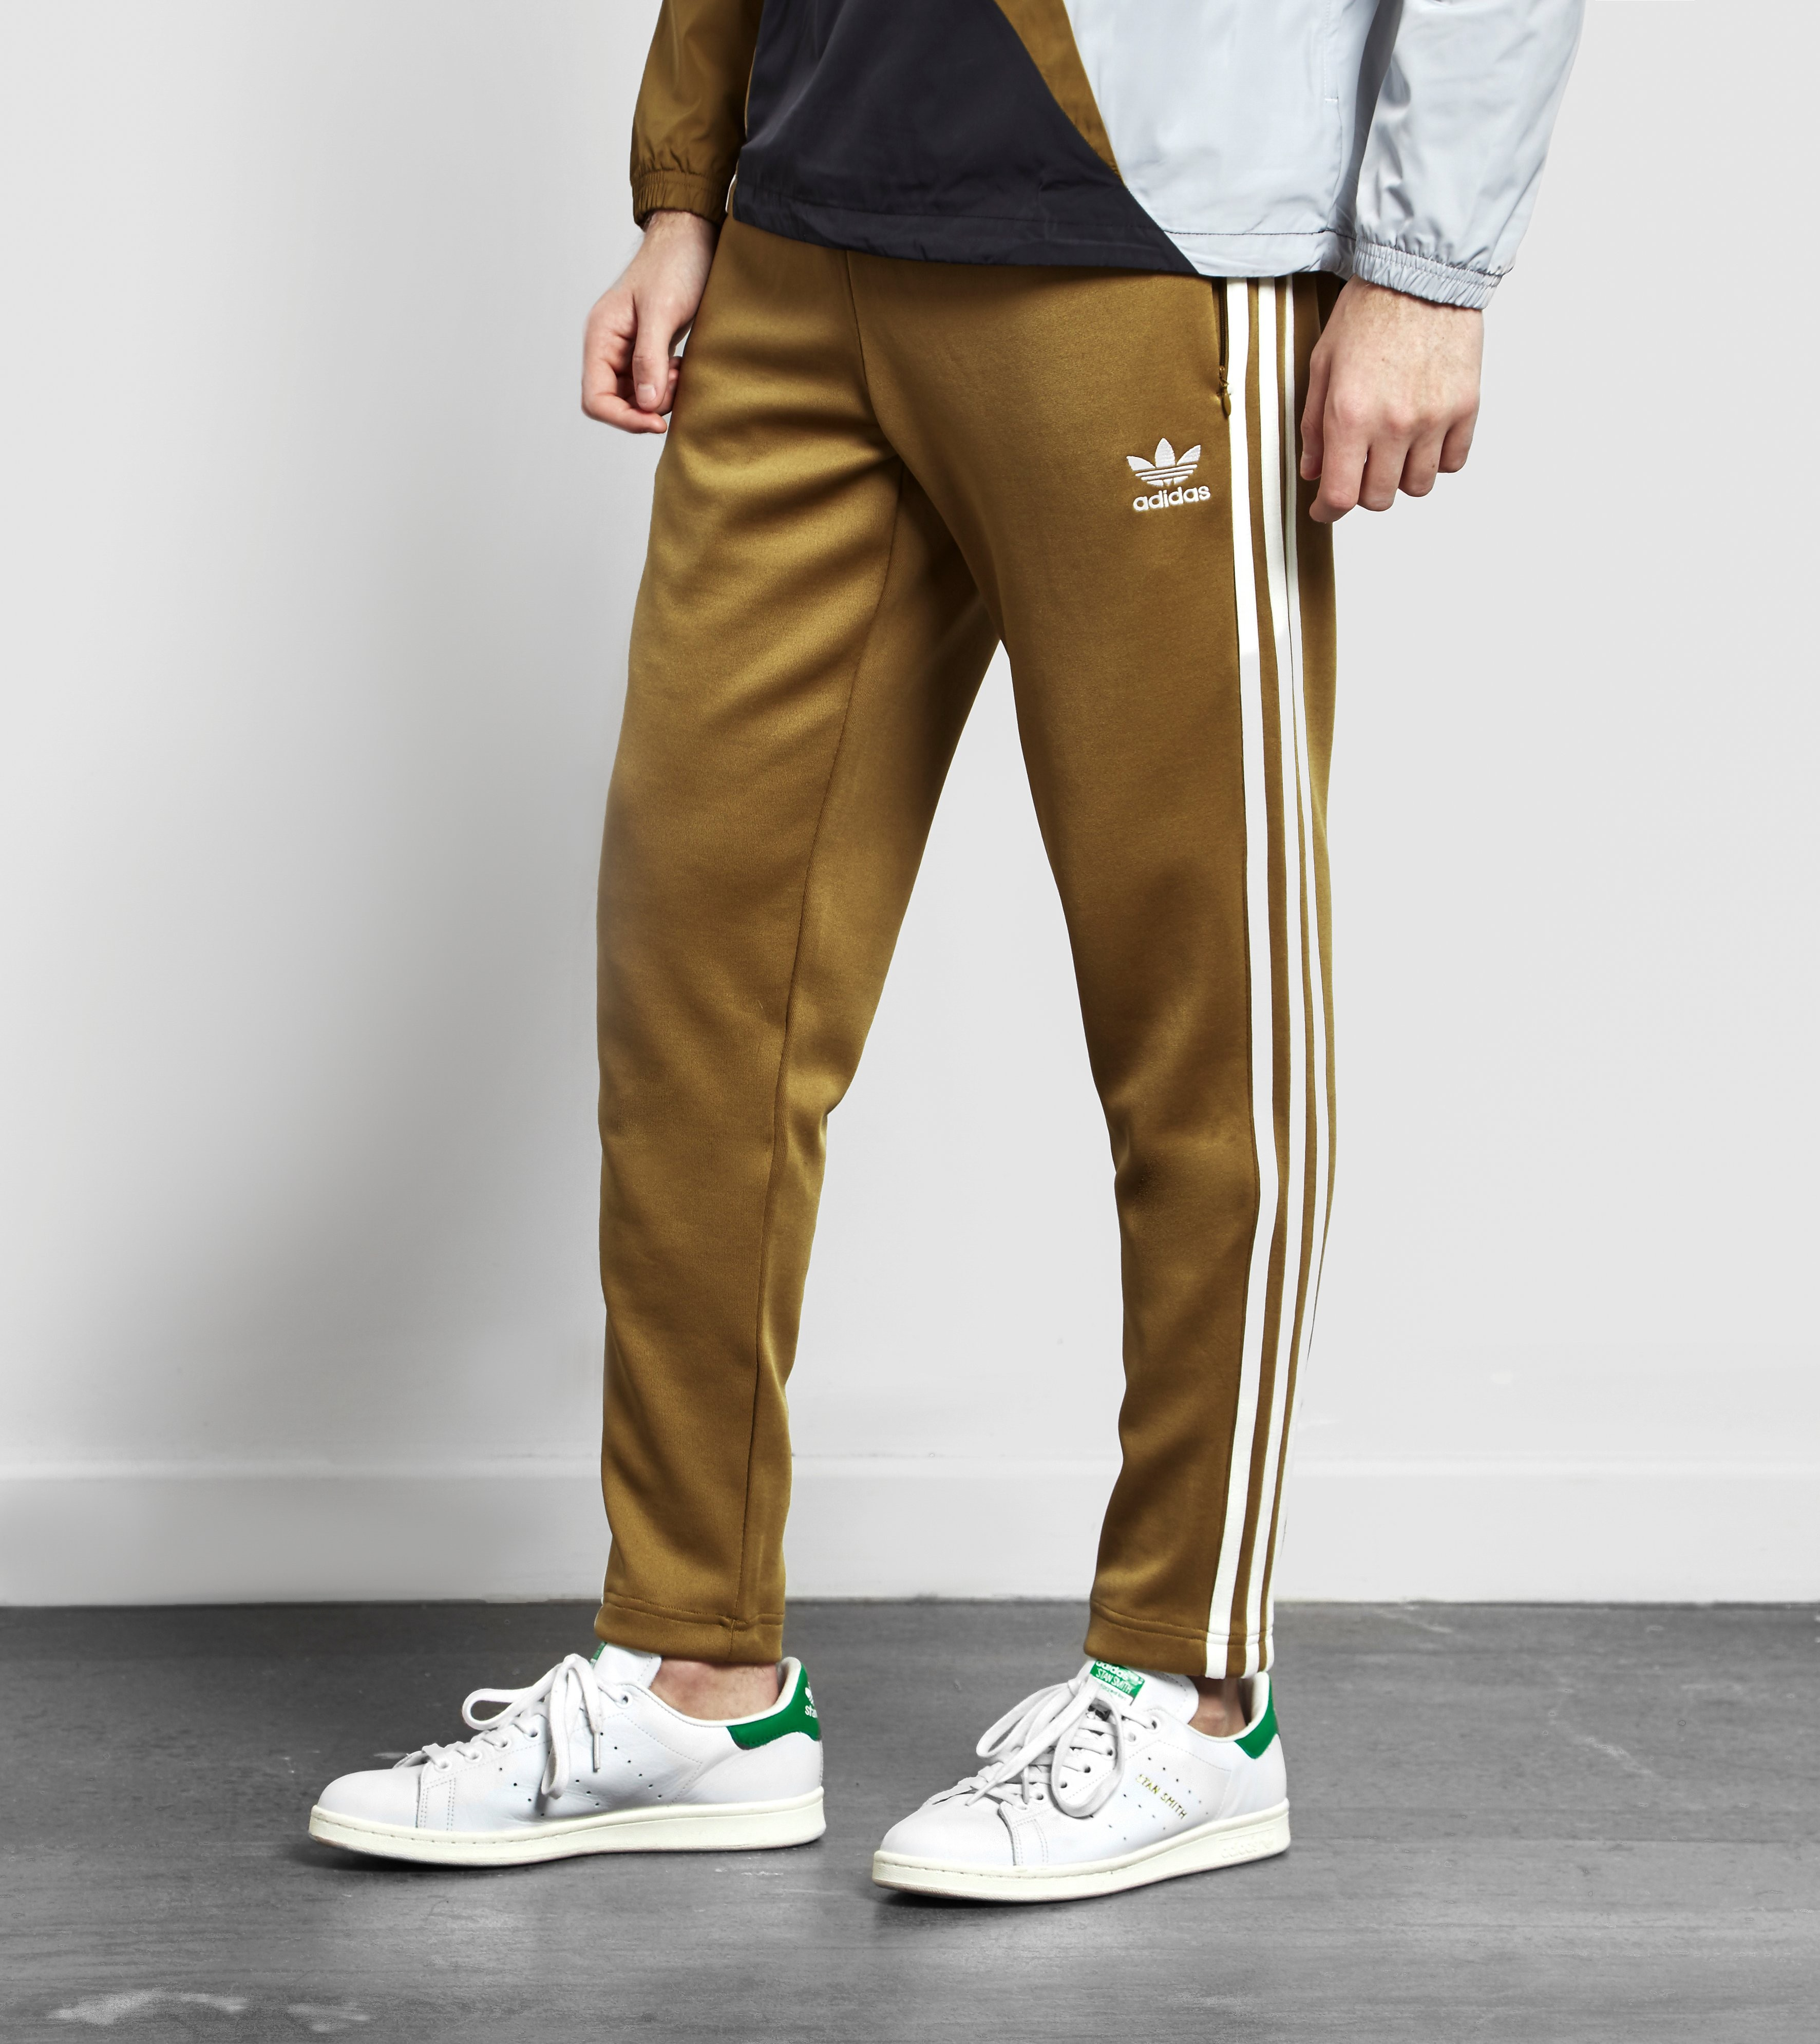 adidas Originals Superstar Track Pant - size? Exclusive